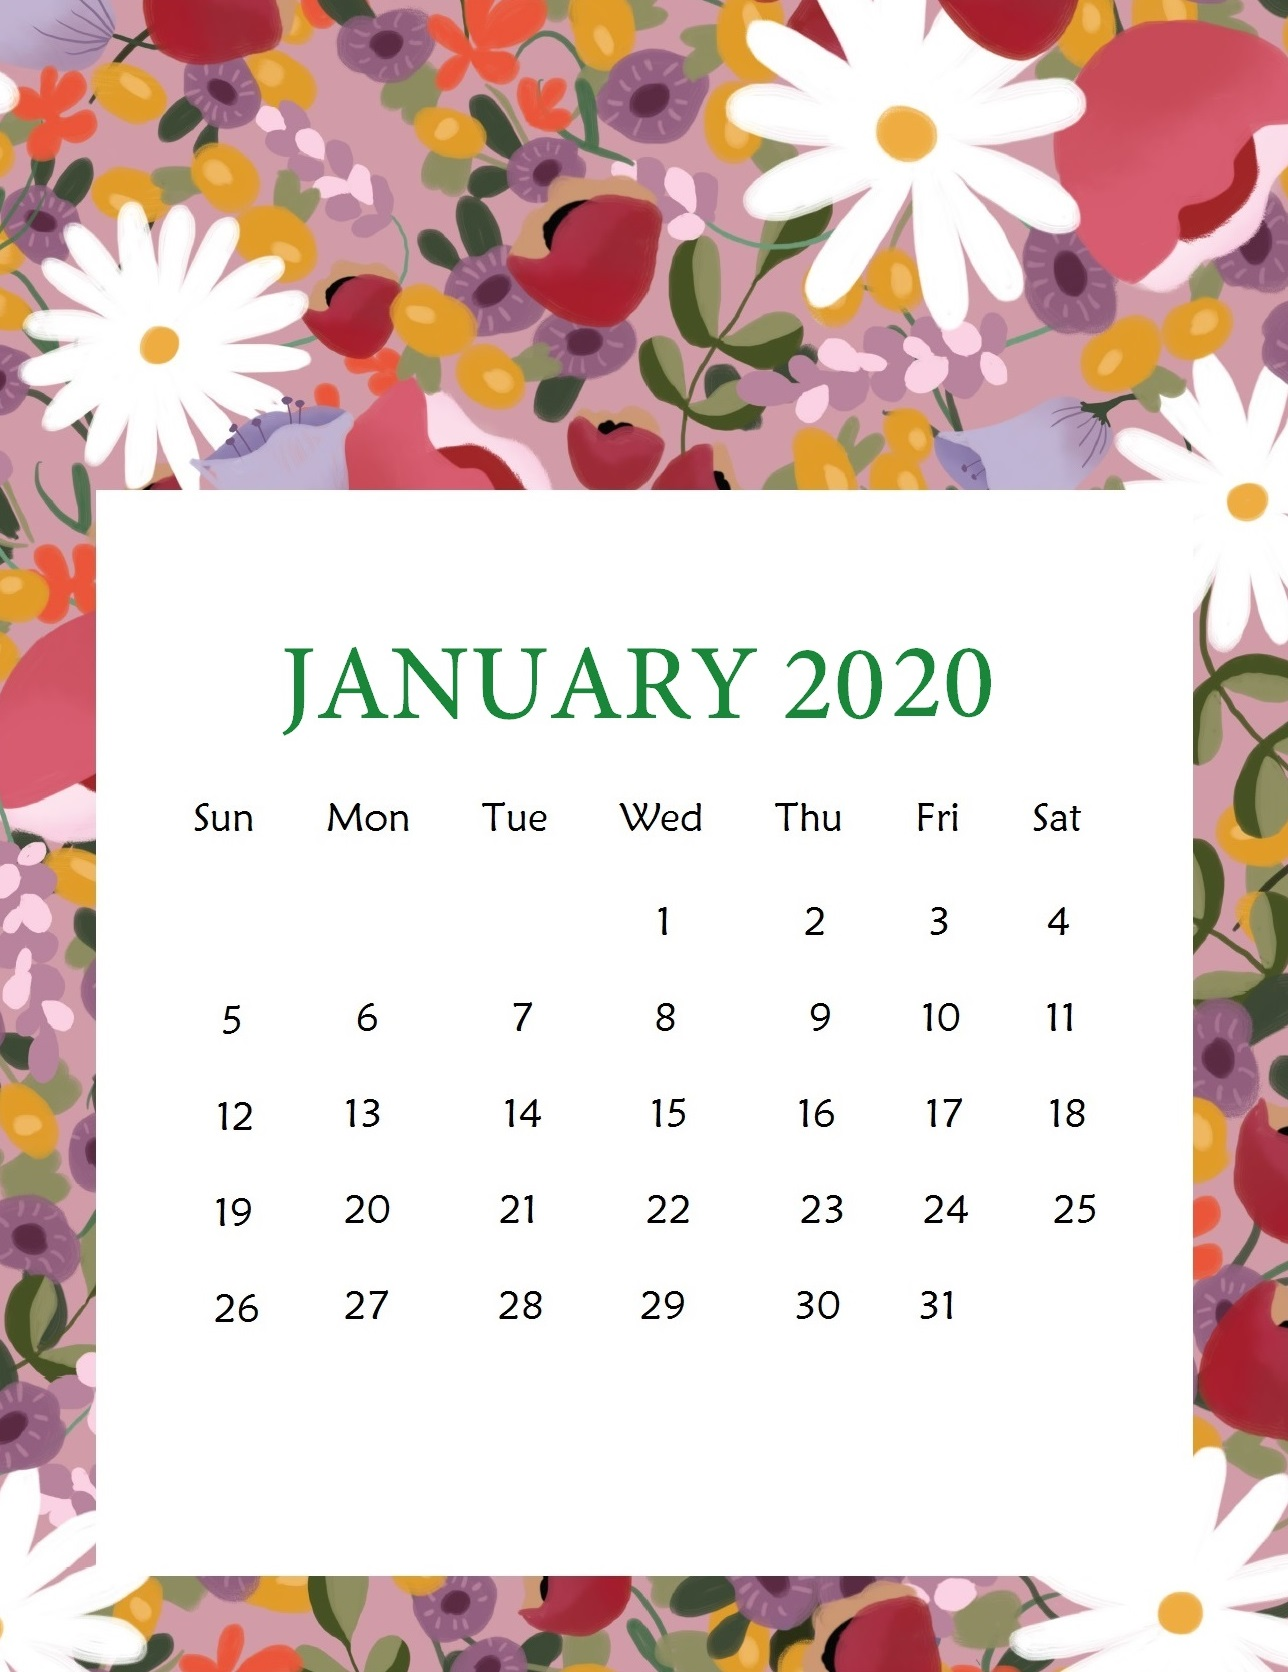 Unique 17 Cute January Calendar 2020 Floral Wallpaper For Desktop